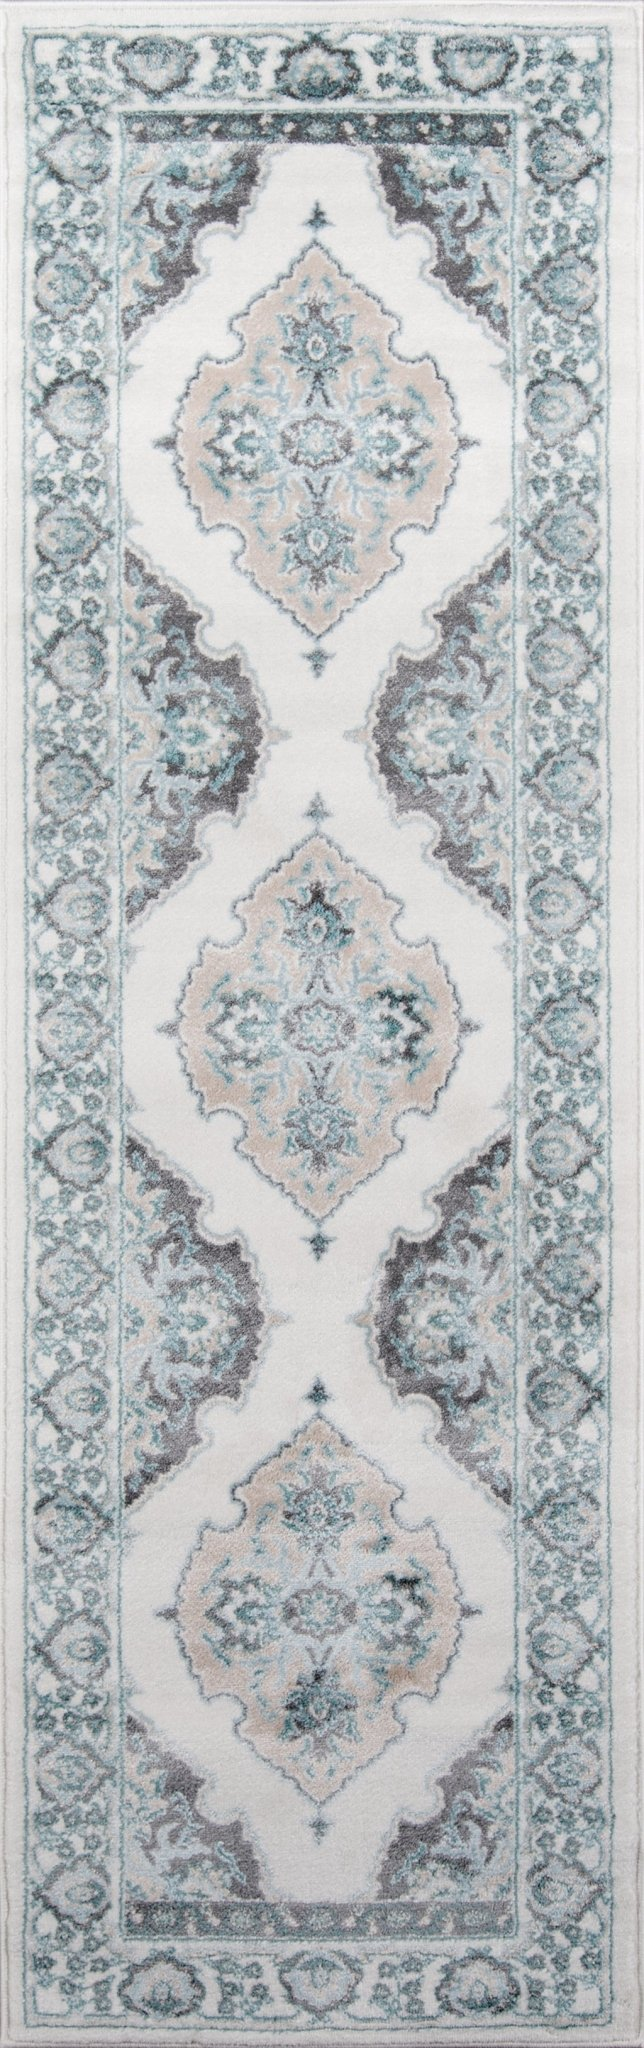 Brooklyn Heights BH-06 Rug.